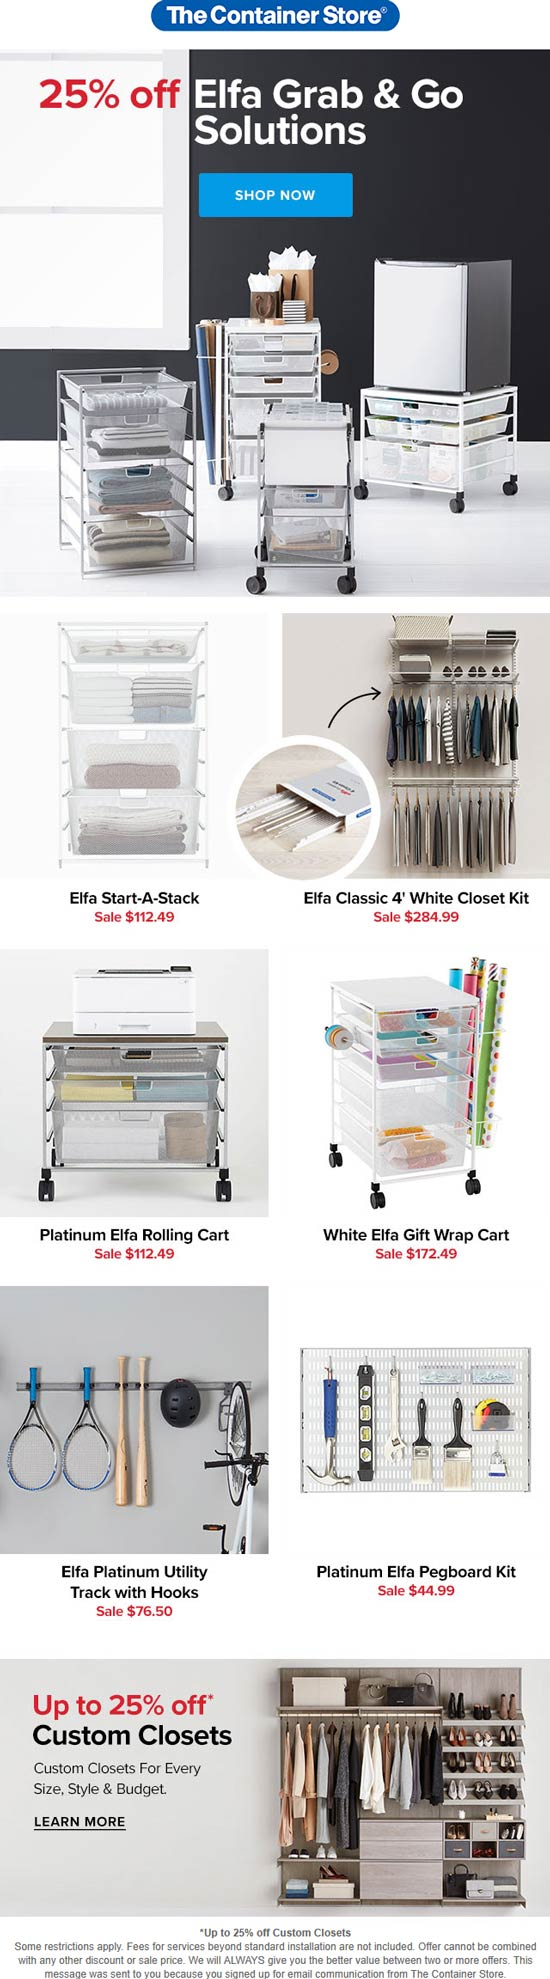 The Container Store stores Coupon  25% off Elfa grab & go at The Container Store #thecontainerstore